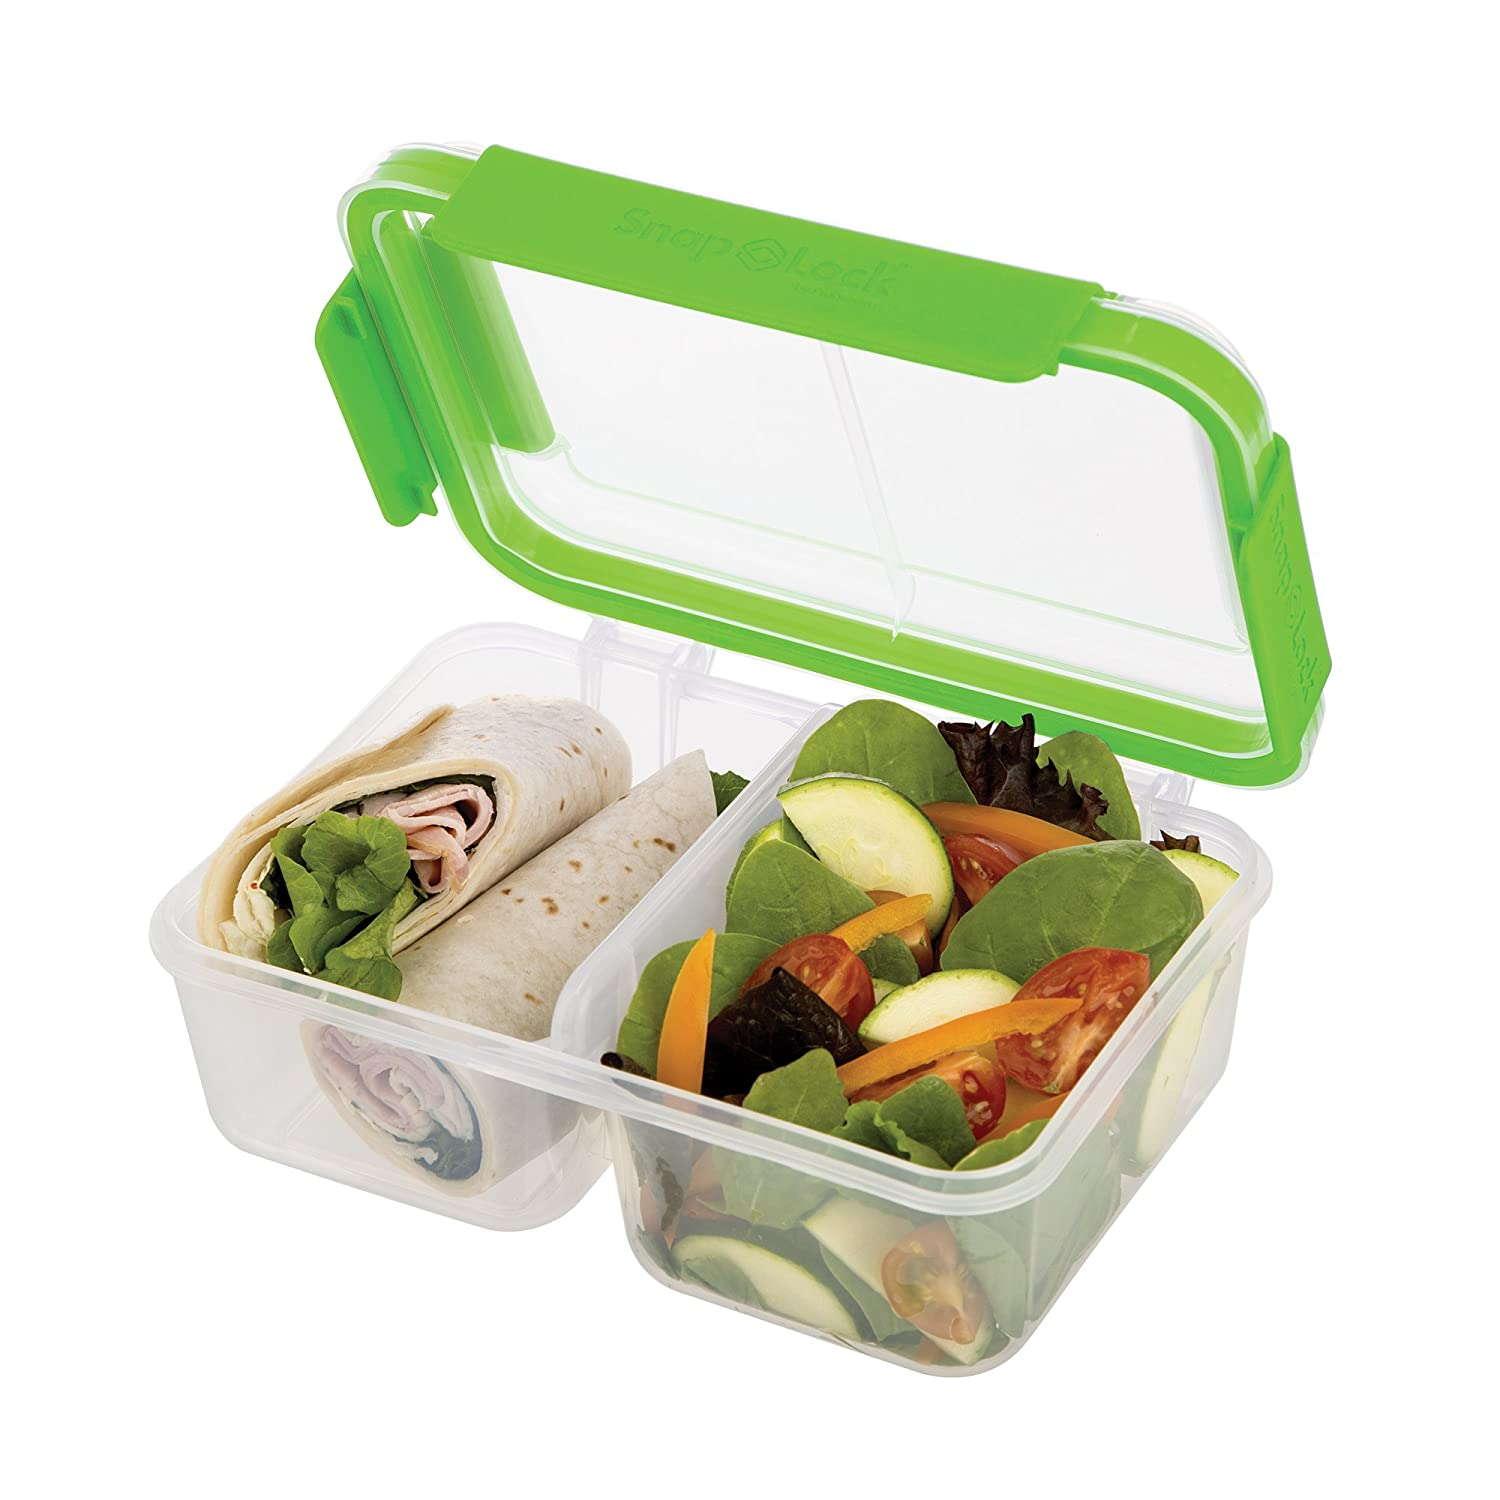 SnapLock by Progressive Deep Split Container - Green, SNL-1018GEasy-To-Open, Leak-Proof Silicone Seal, Snap-Off Lid, Stackable, BPA FREE